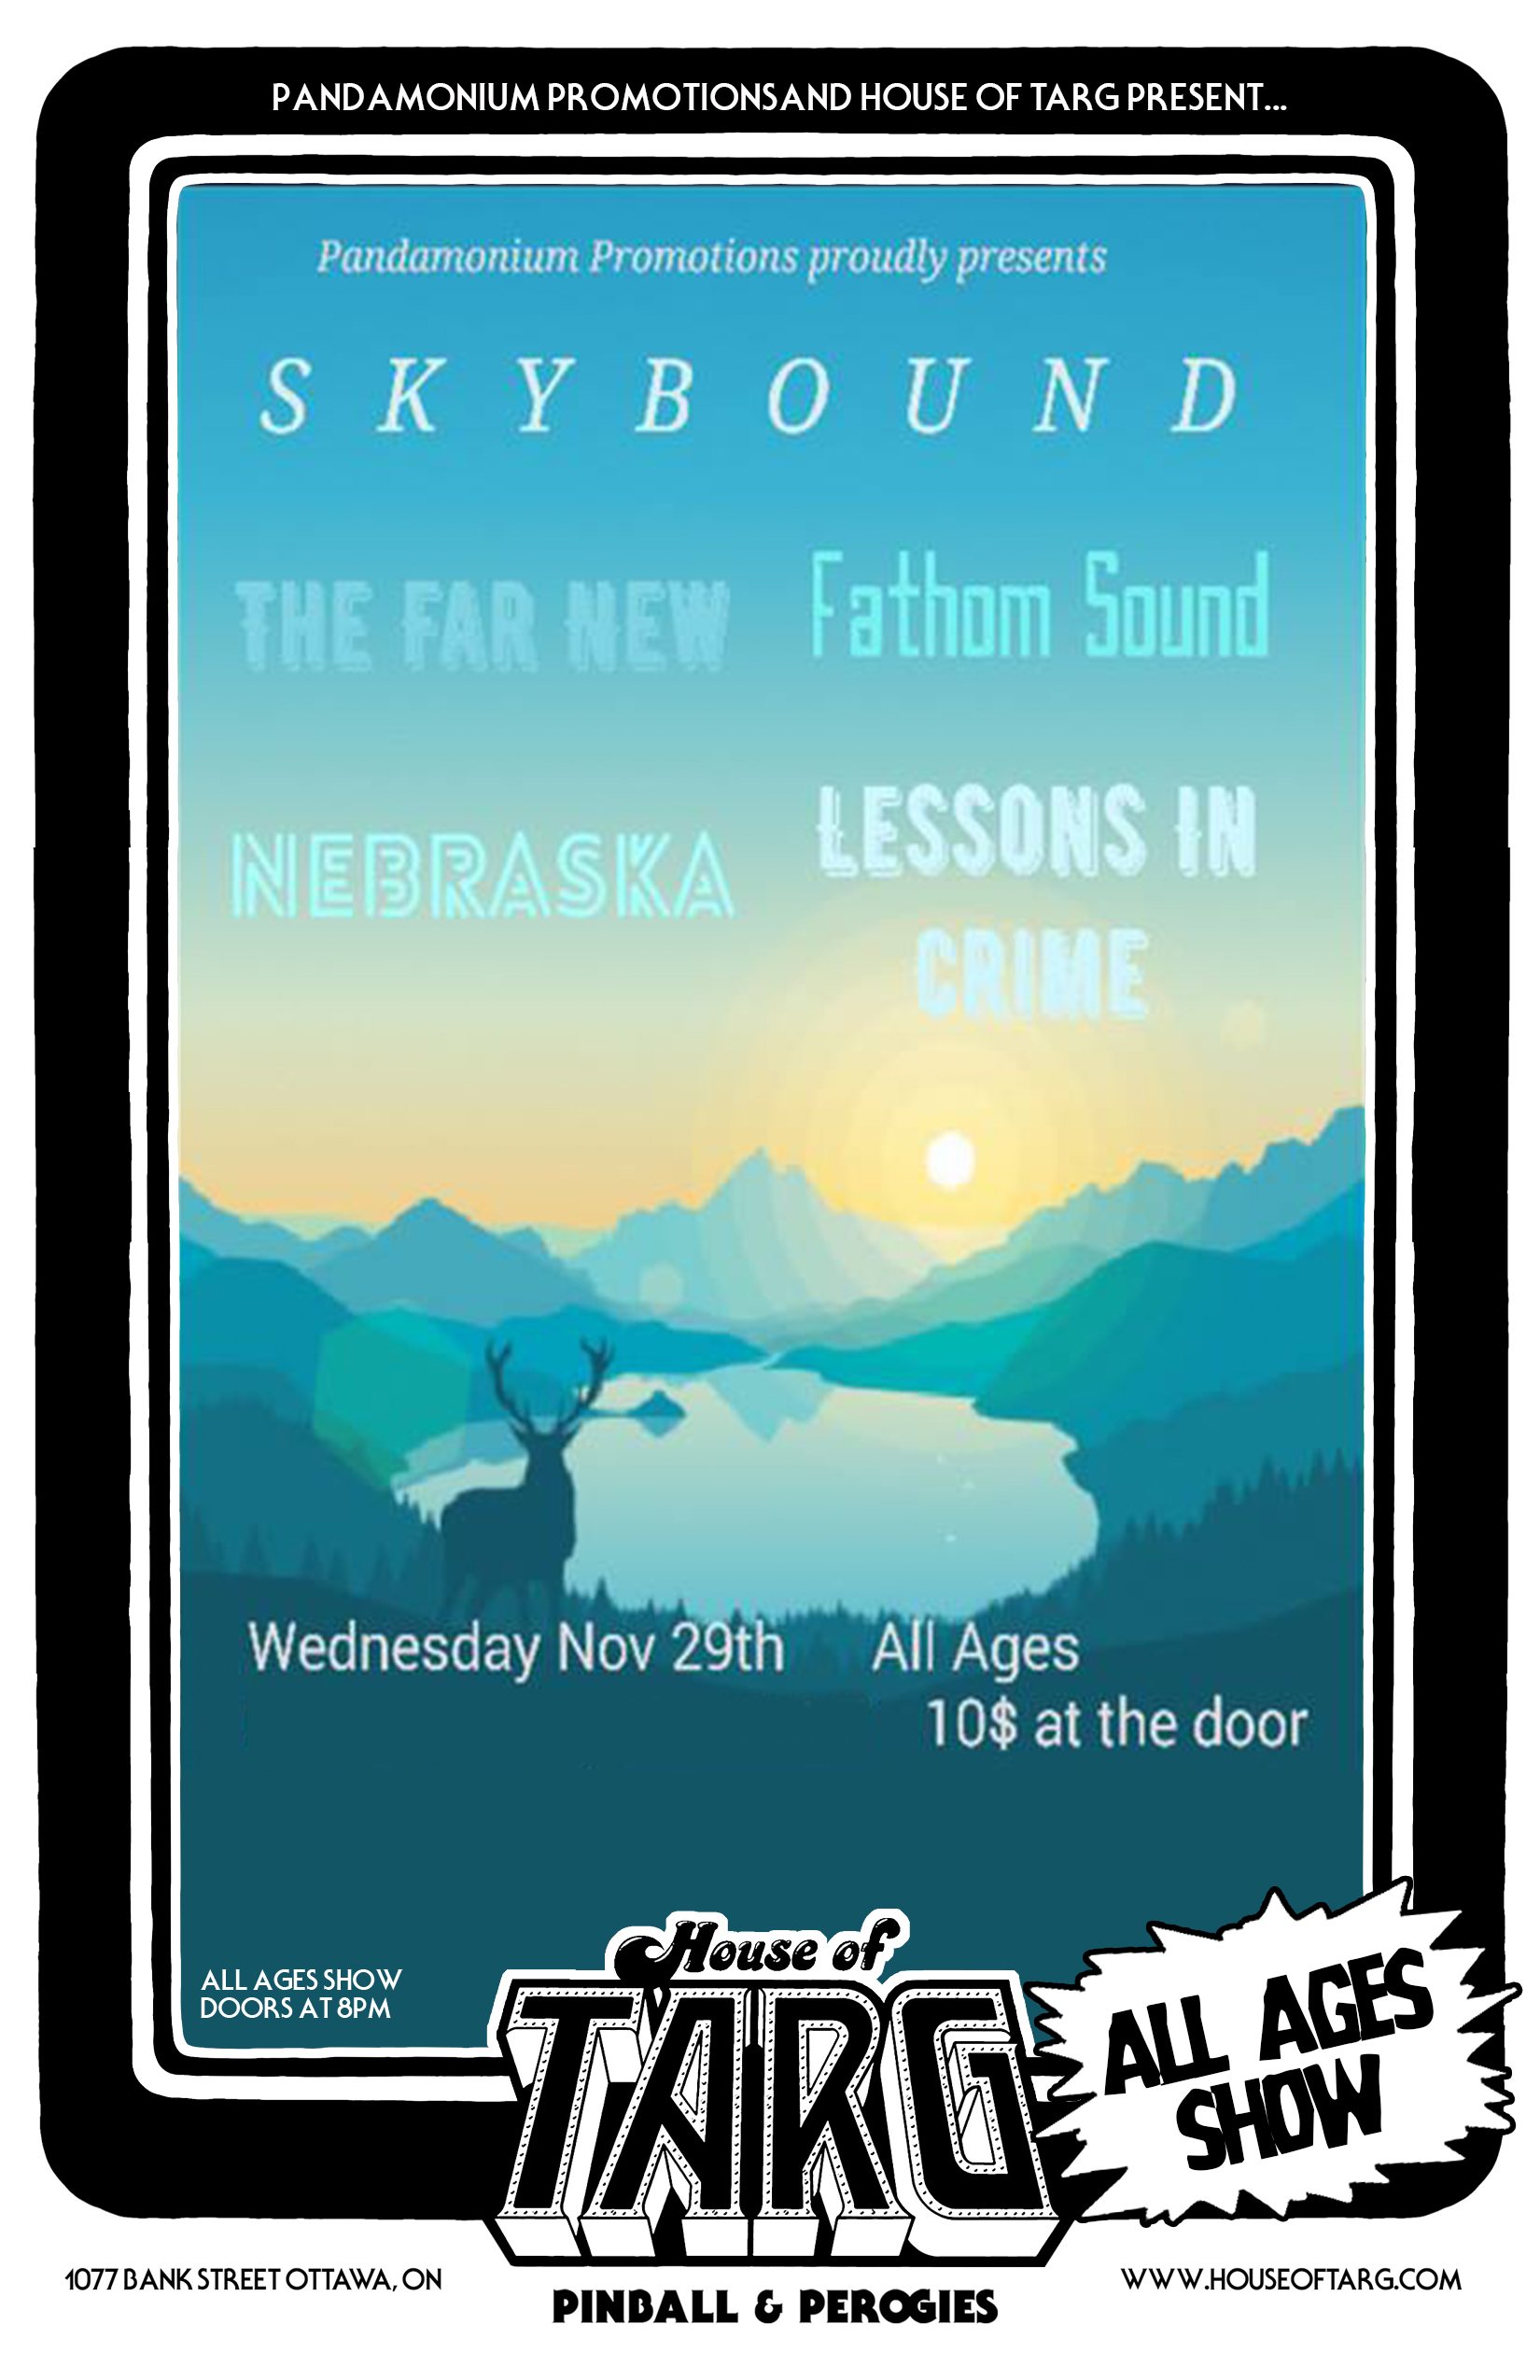 ALL AGES SHOW: Skybound + Fathom Sound + The Far New + Lessons in